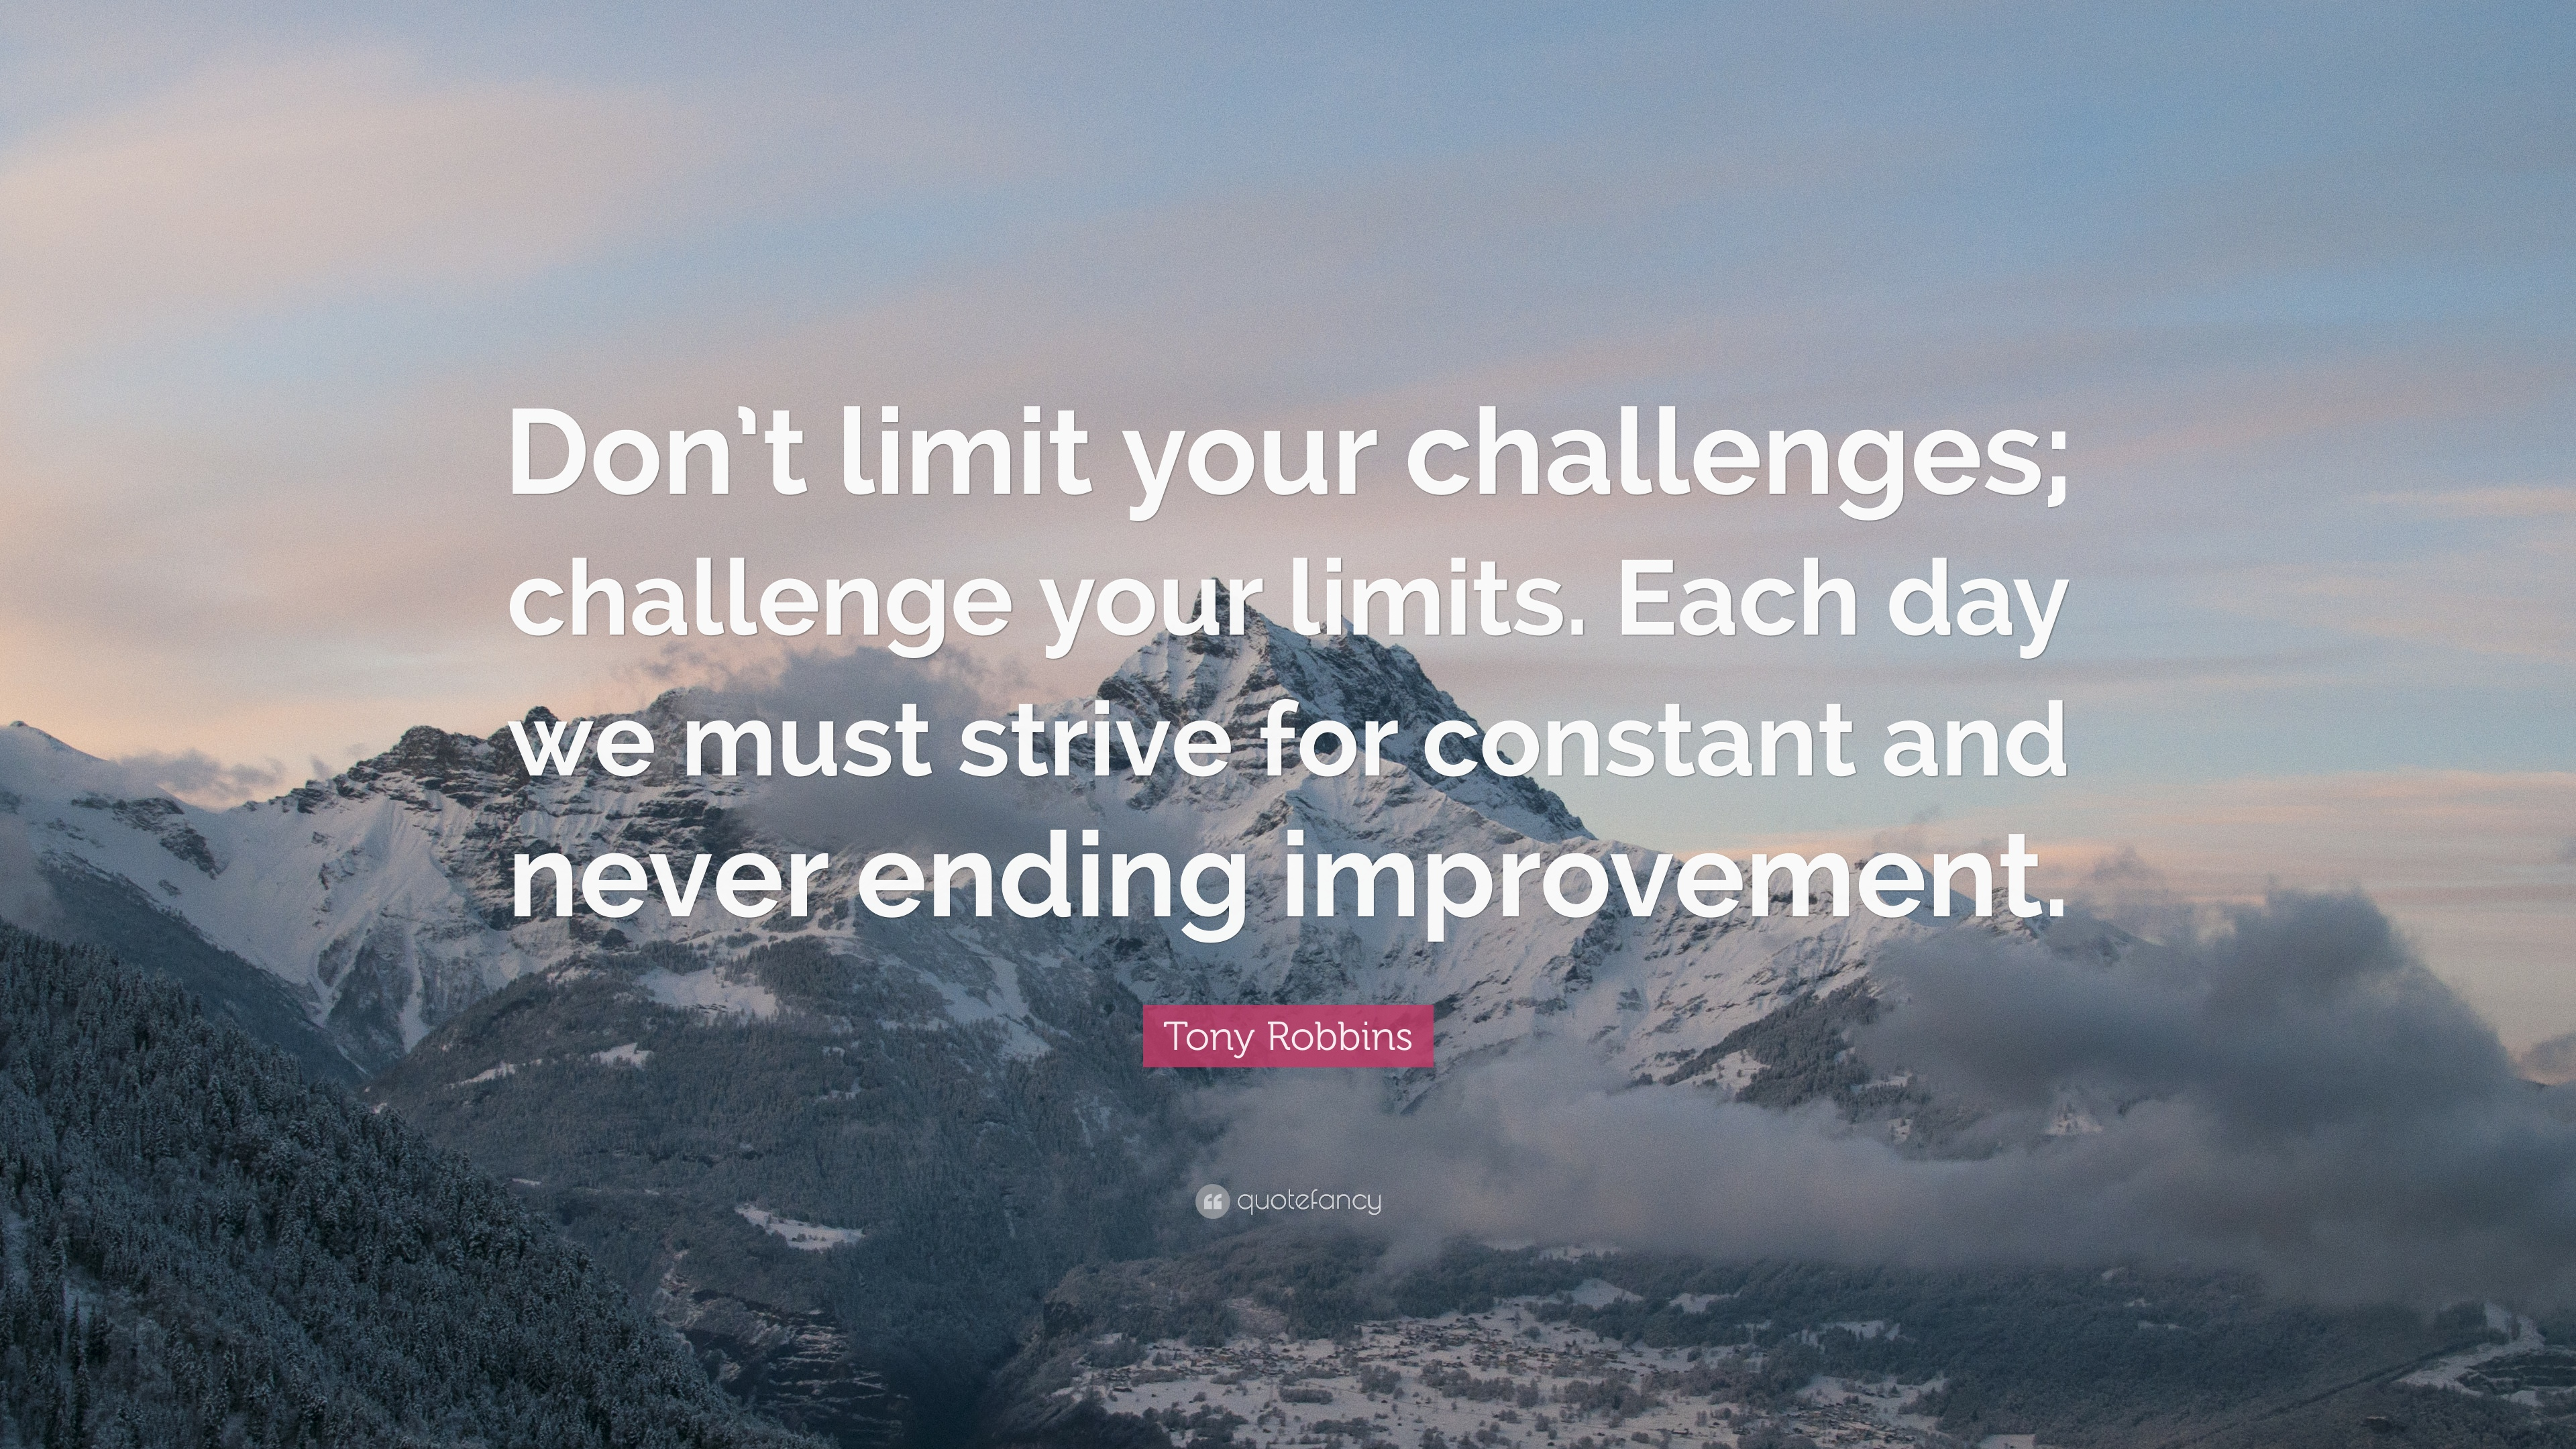 Quotes About Challenges Commitment Quotes 40 Wallpapers  Quotefancy